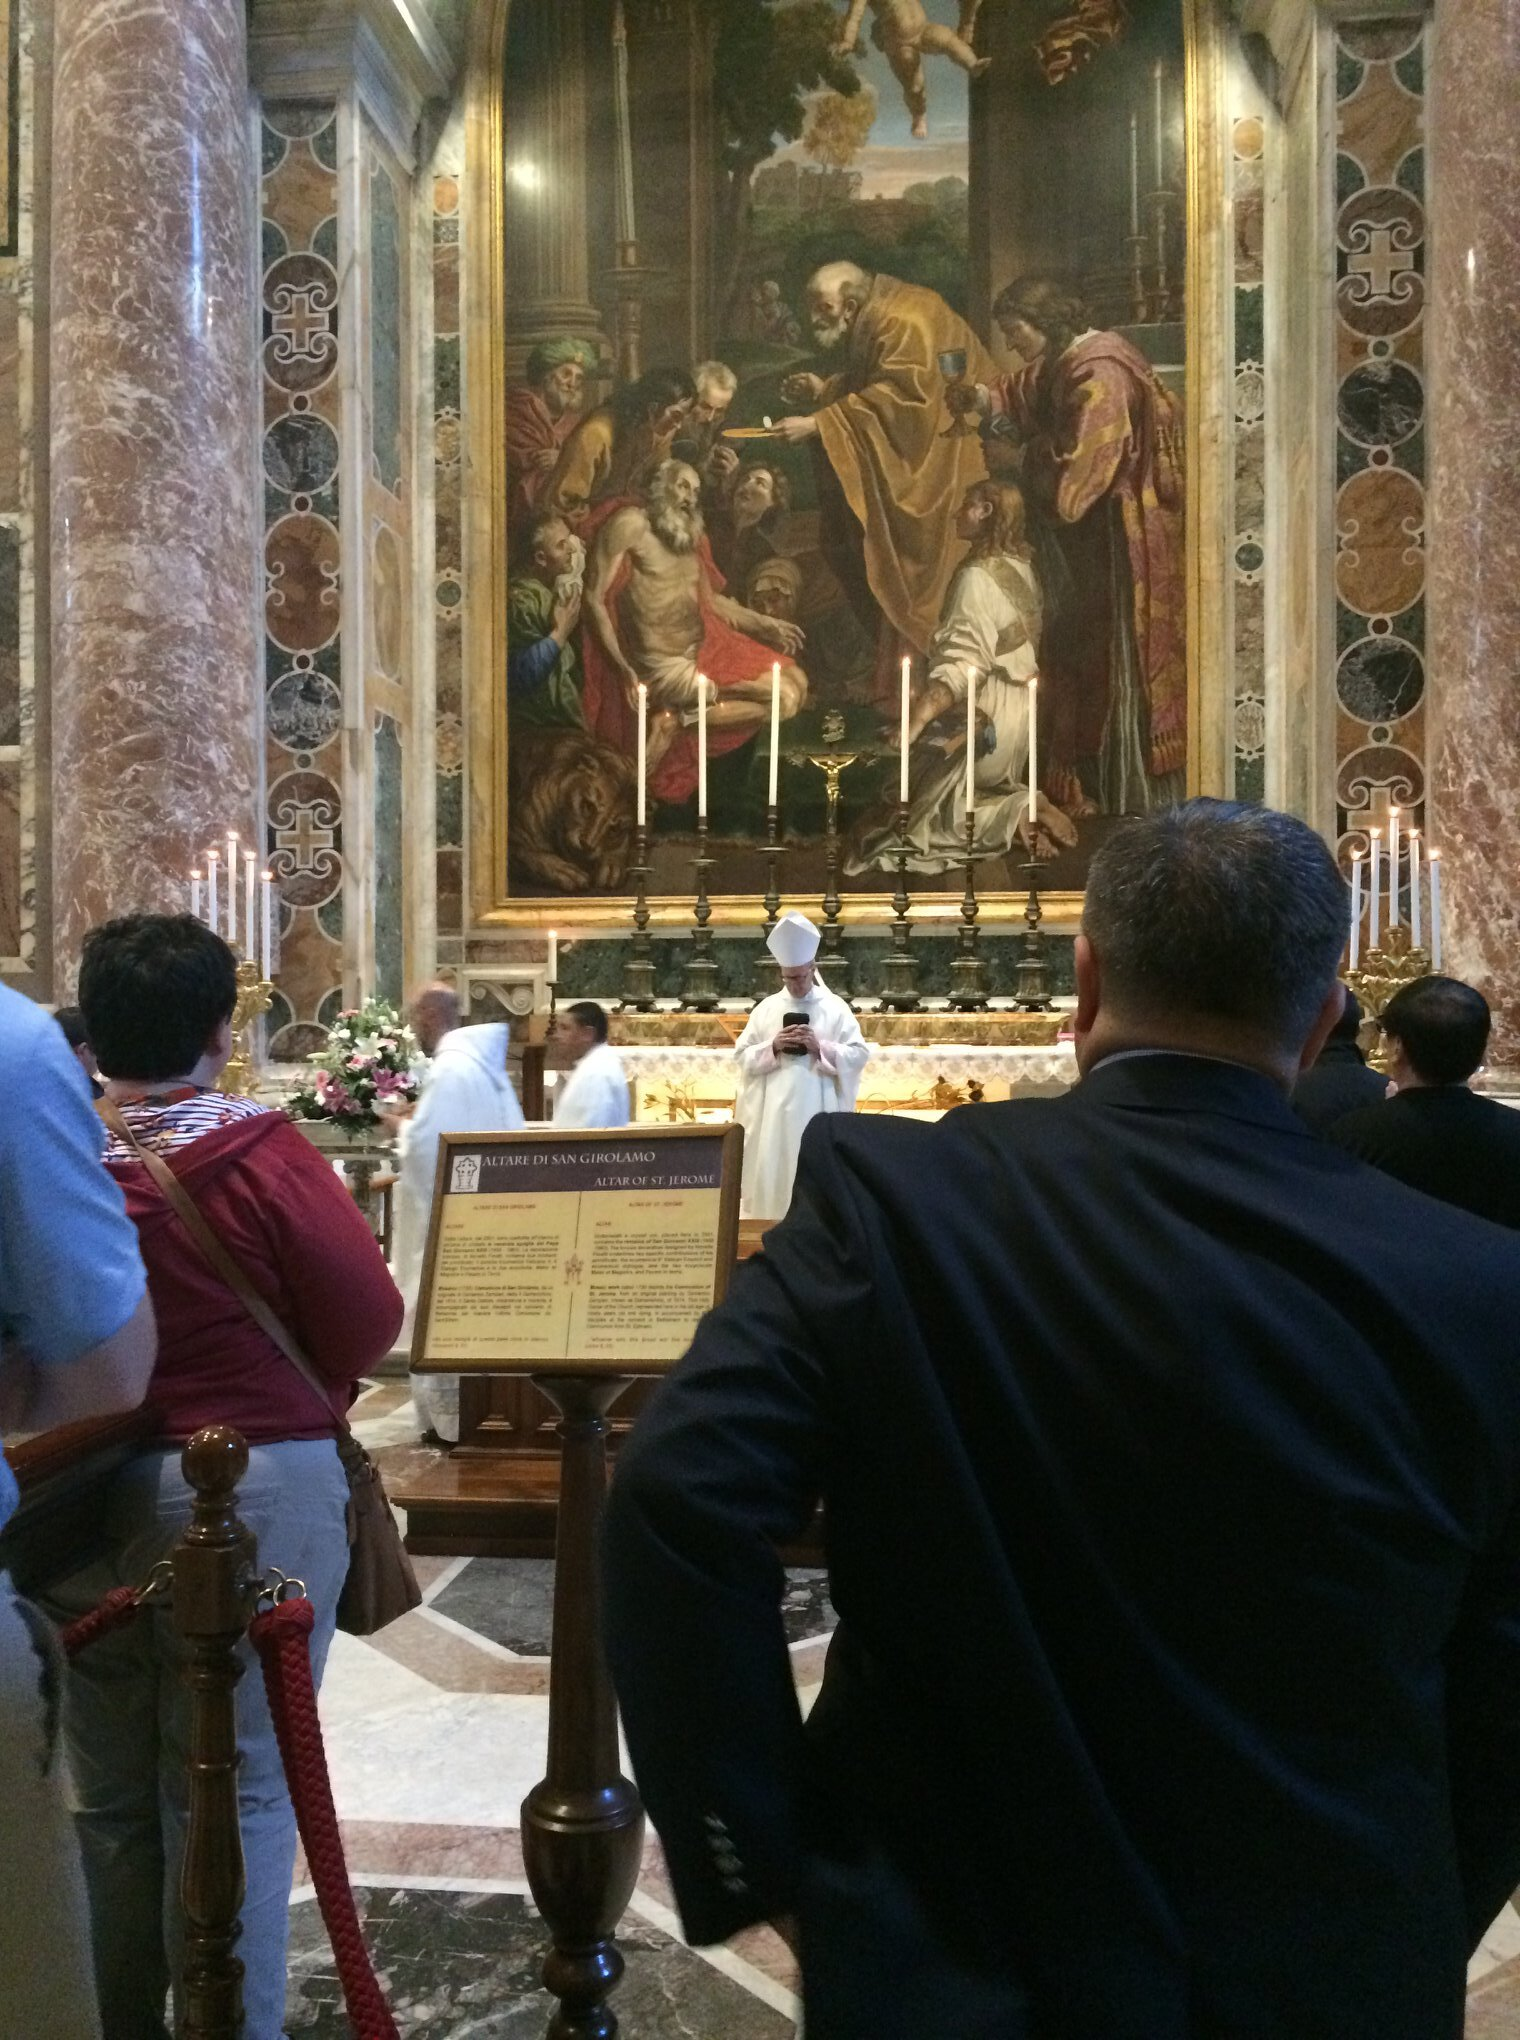 Bishop Conley celebrated Mass at St. John XXIII's crypt in St. Peter's Basilica on his feast day.